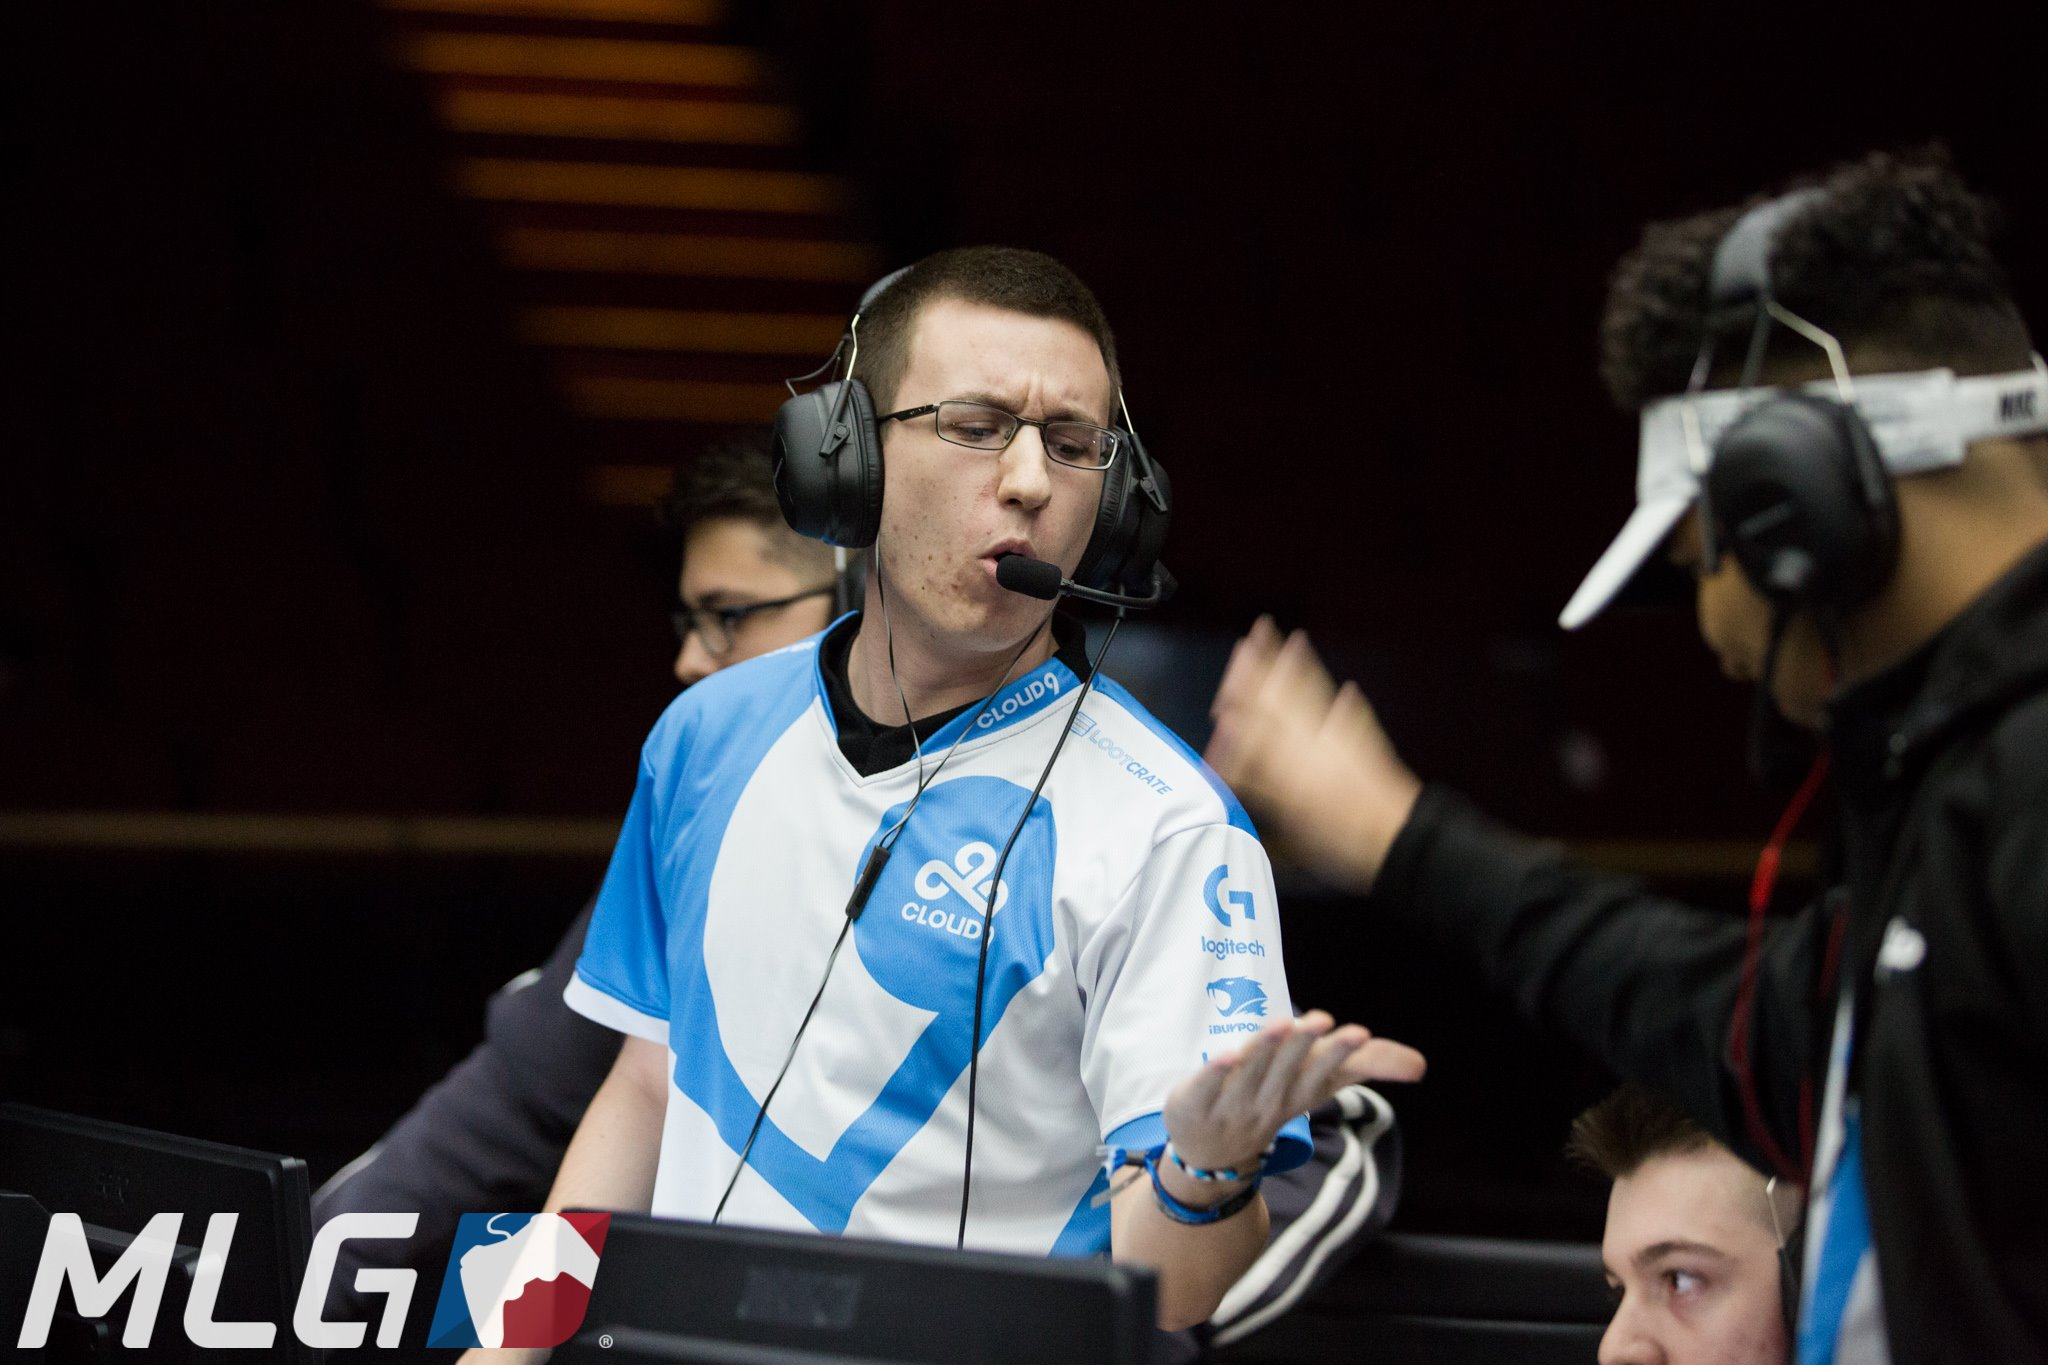 Aches at Call of Duty XP 2016. Image courtesy of MLG.